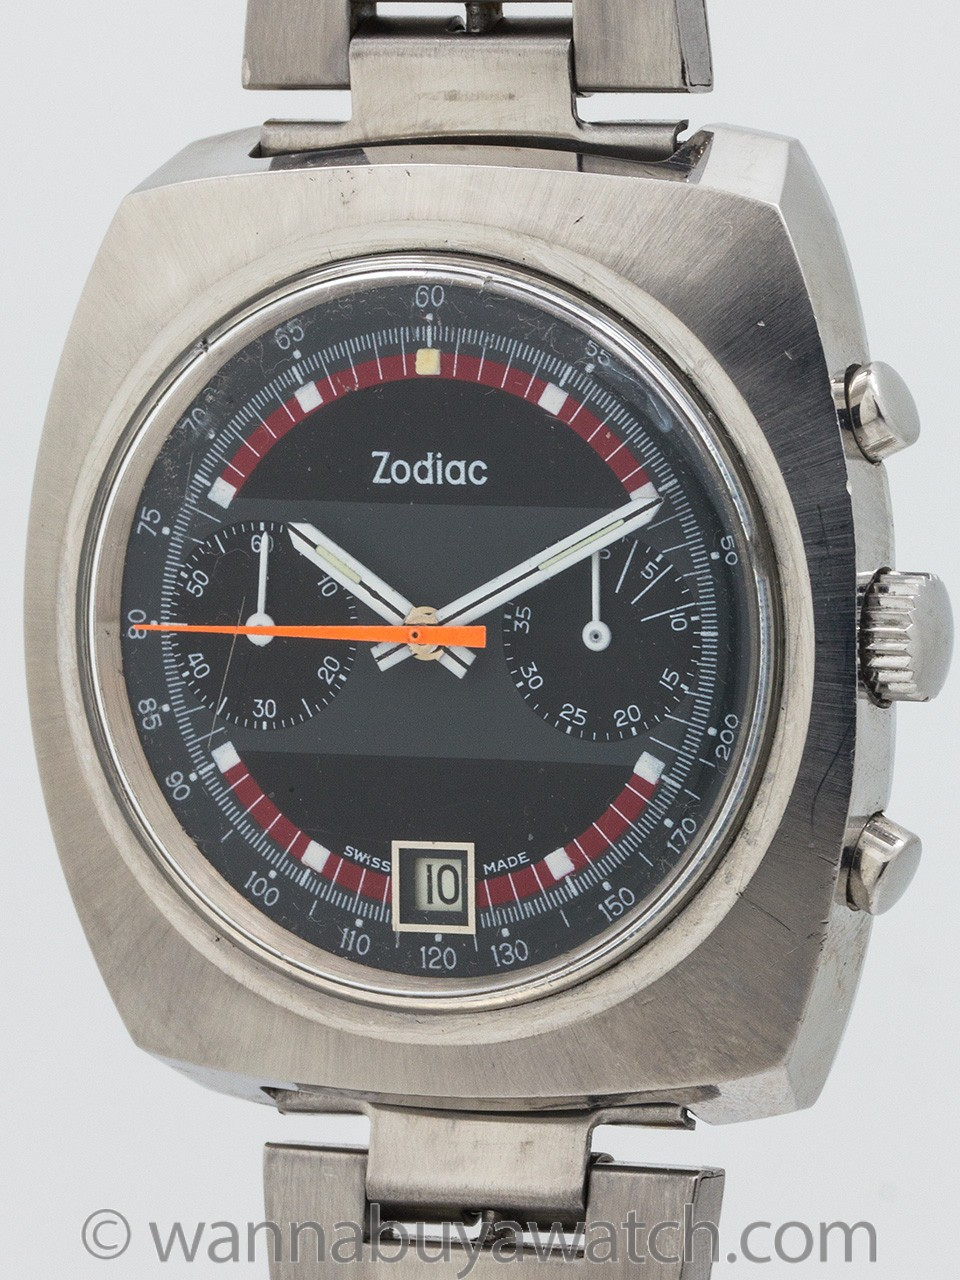 Zodiac Stainless Steel Massive Chronograph circa 1970's